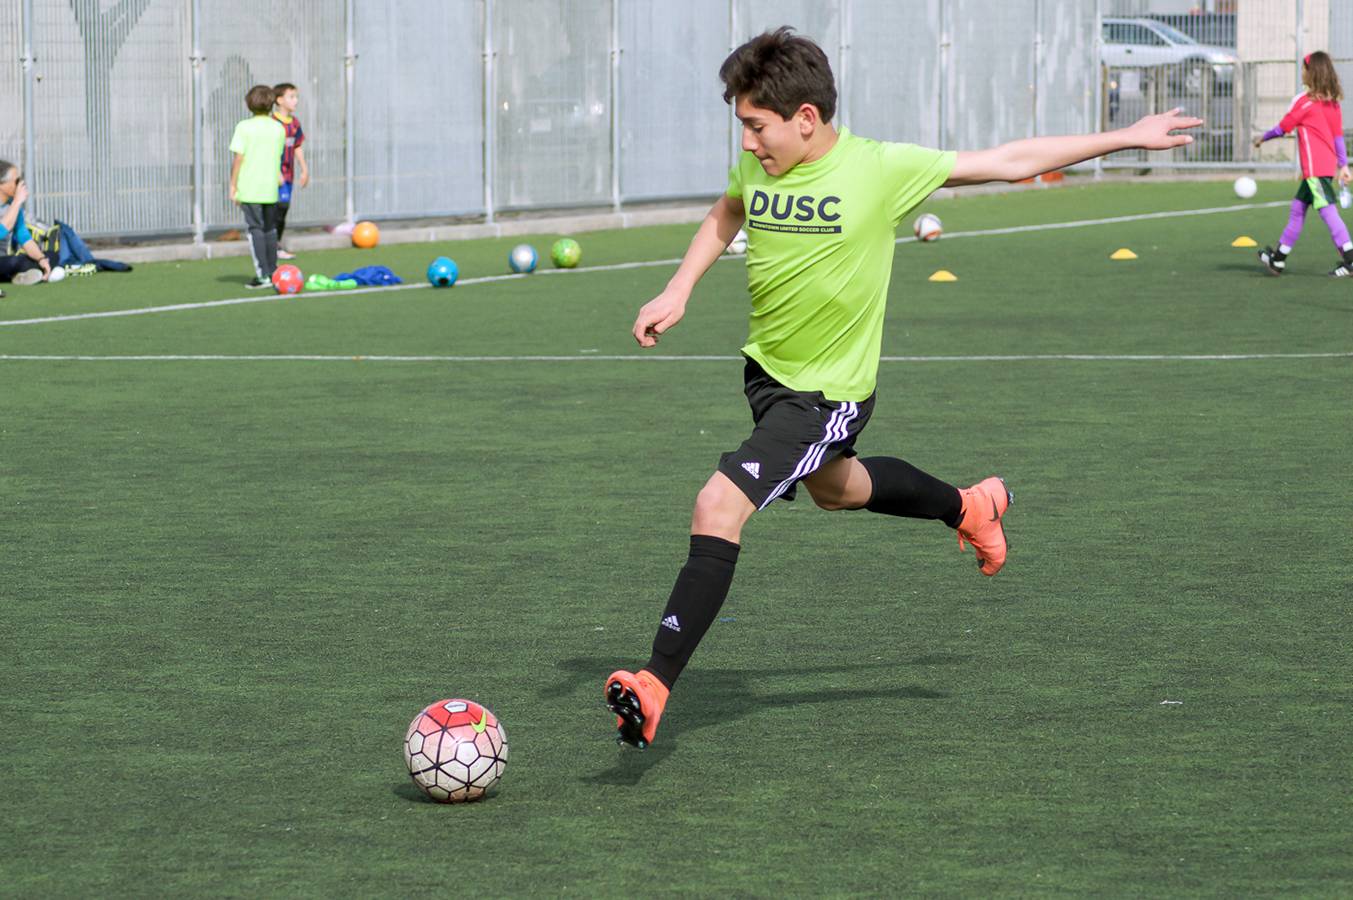 DUSC-downtown-united-soccer-club-youth-new-york-city-classes1.jpg